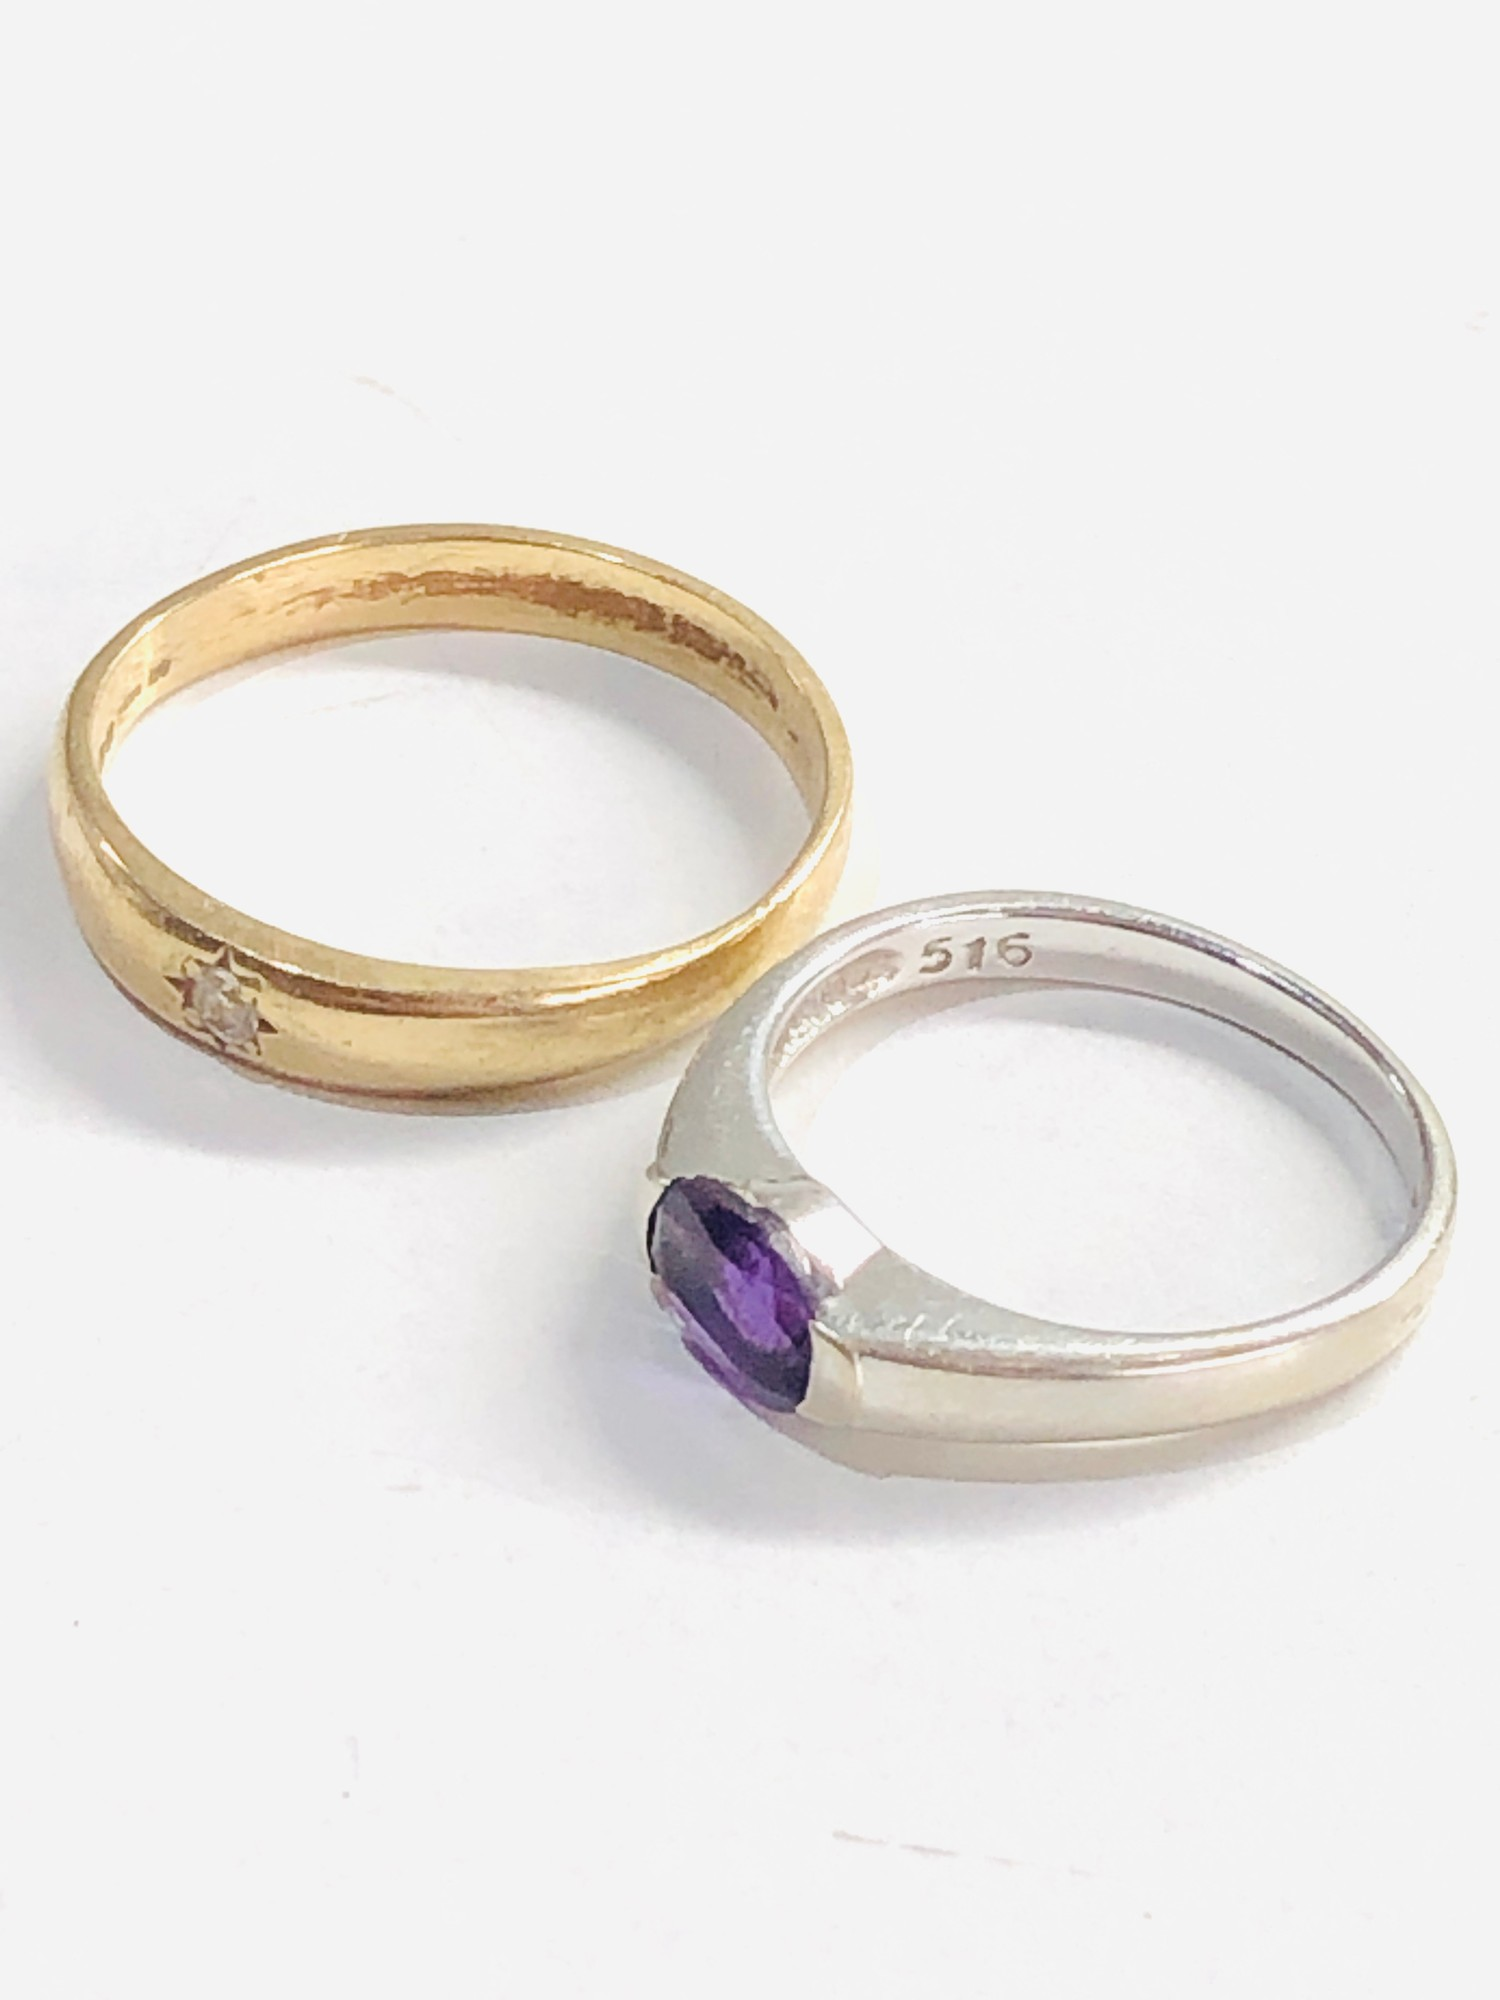 2 x 9ct gold diamond ring and white gold amethyst ring 4.8g - Image 2 of 3